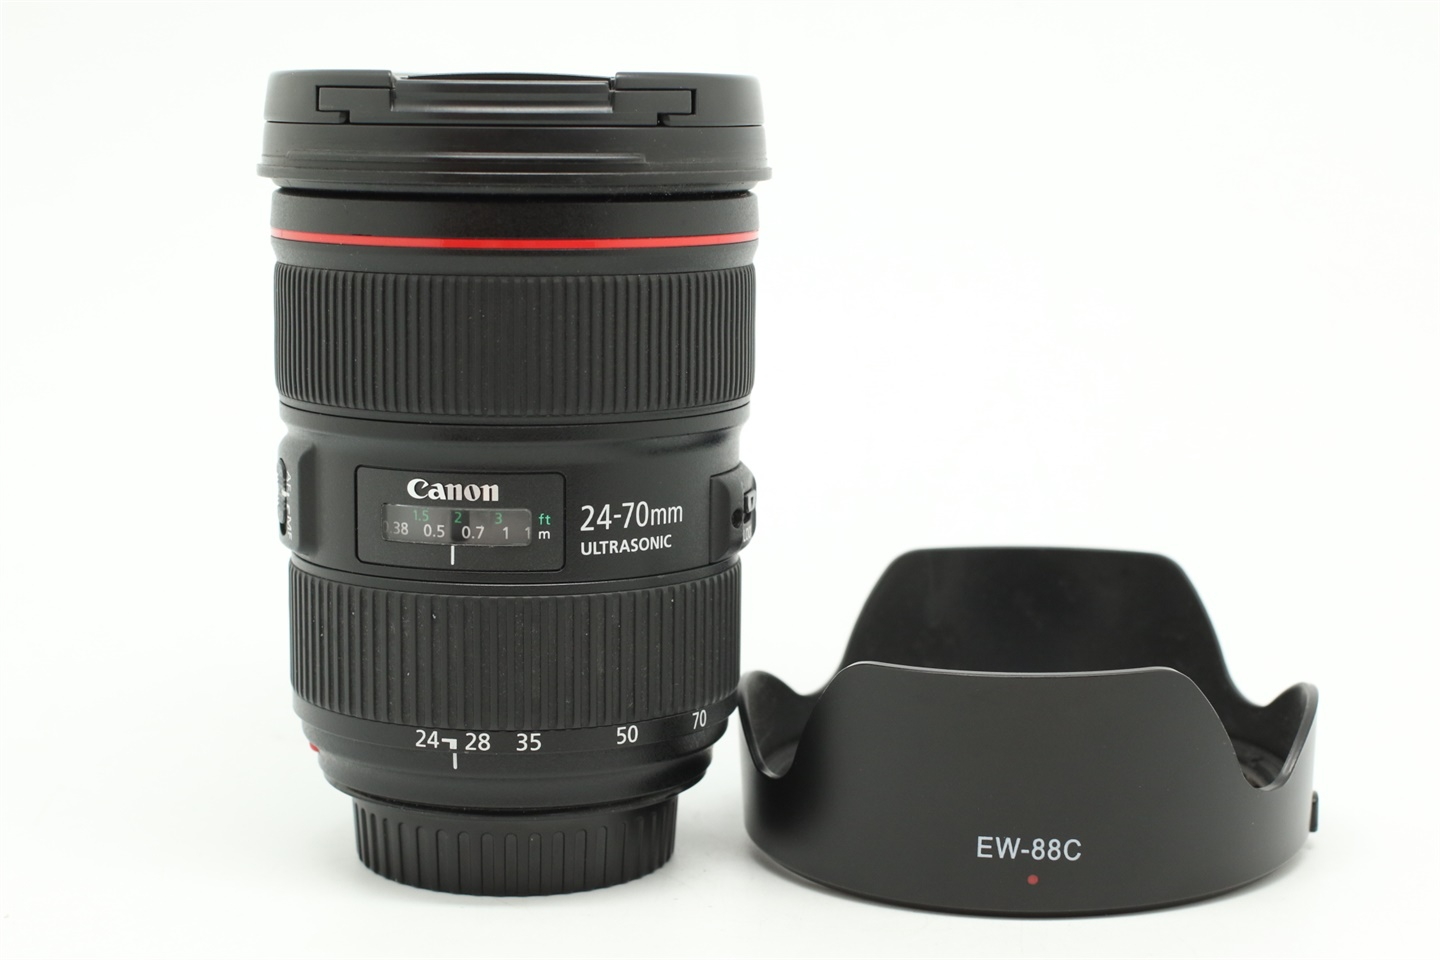 [USED-PUDU] CANON 24-70MM F2.8 L II EF USM LENS 95%LIKE NEW CONDITION  SN:5350003684